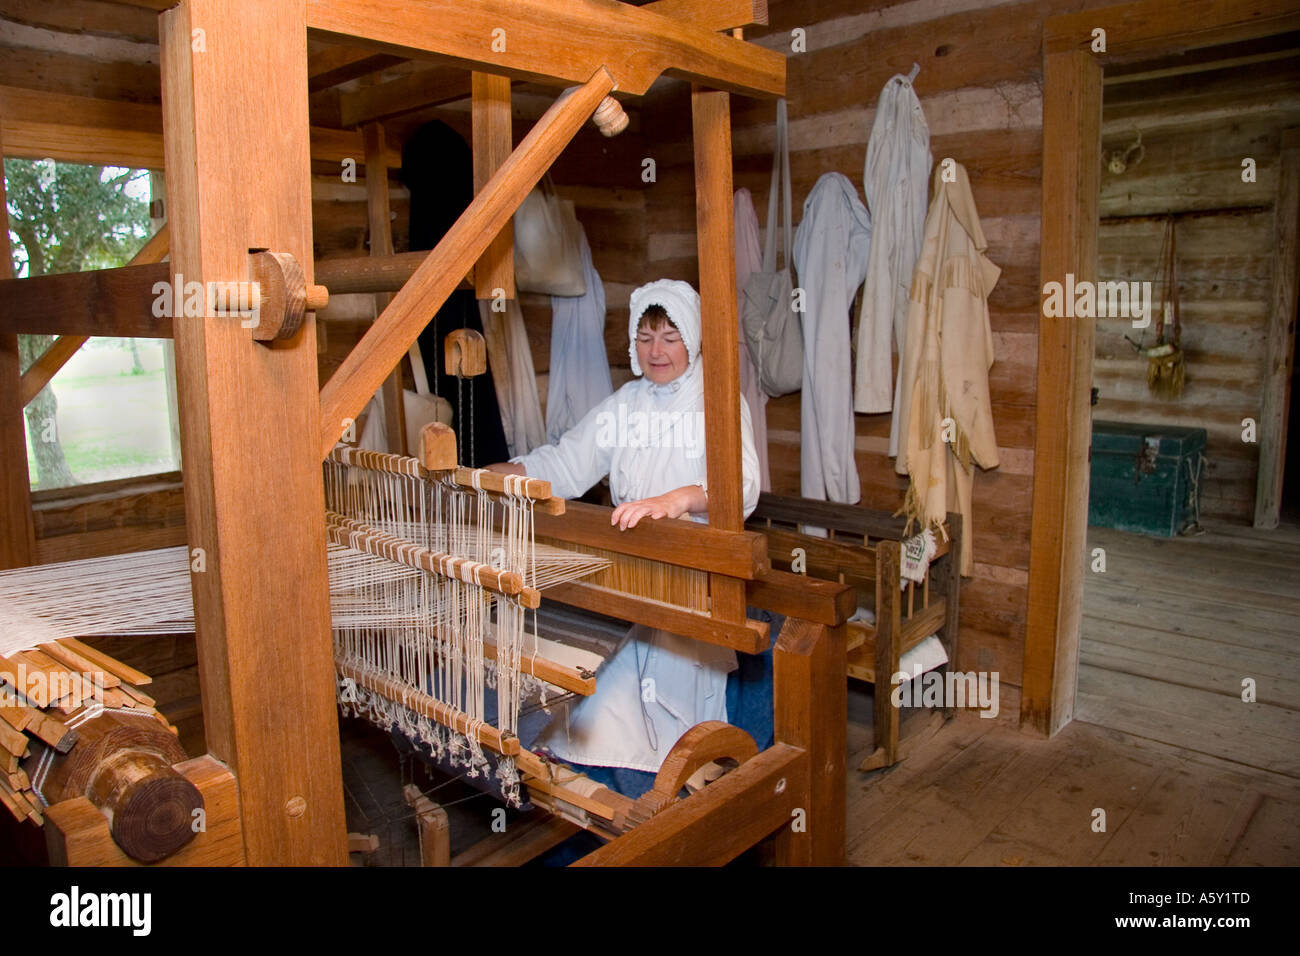 Cabin Creek Clothing: Dogtrot Cabin Stock Photos & Dogtrot Cabin Stock Images